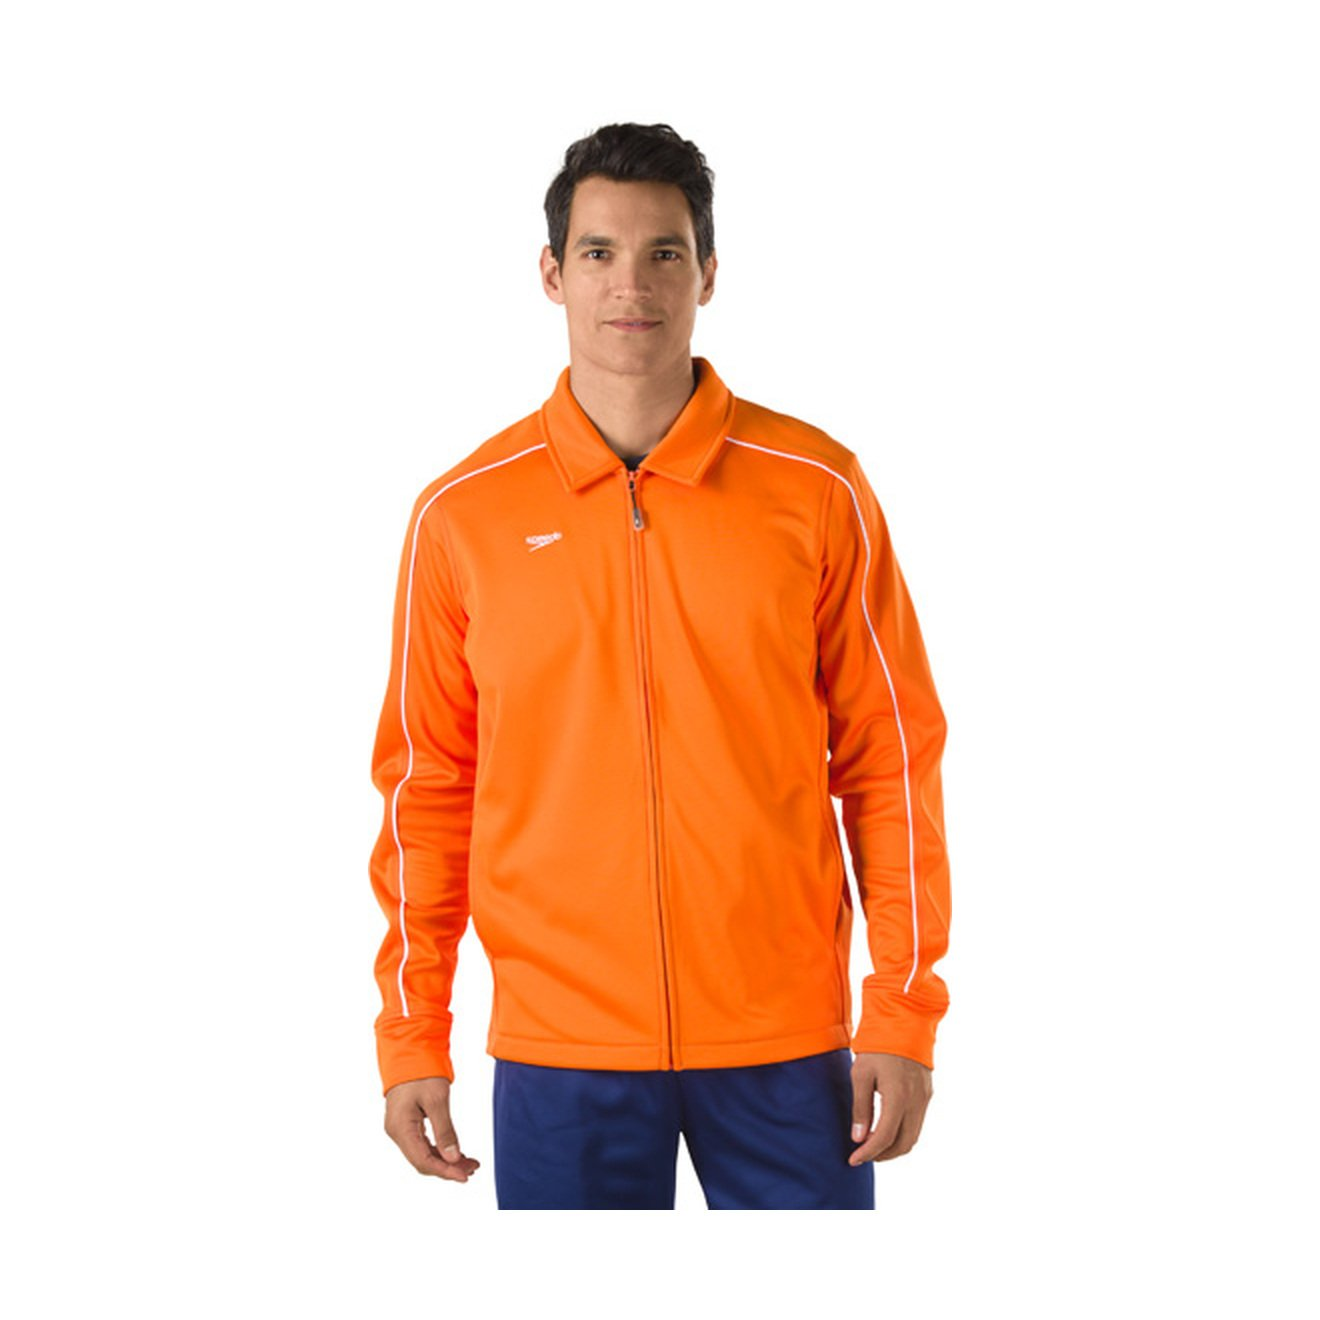 Speedo Orange moyen Speedo pour Homme Rationaliser Warm Up pour Homme